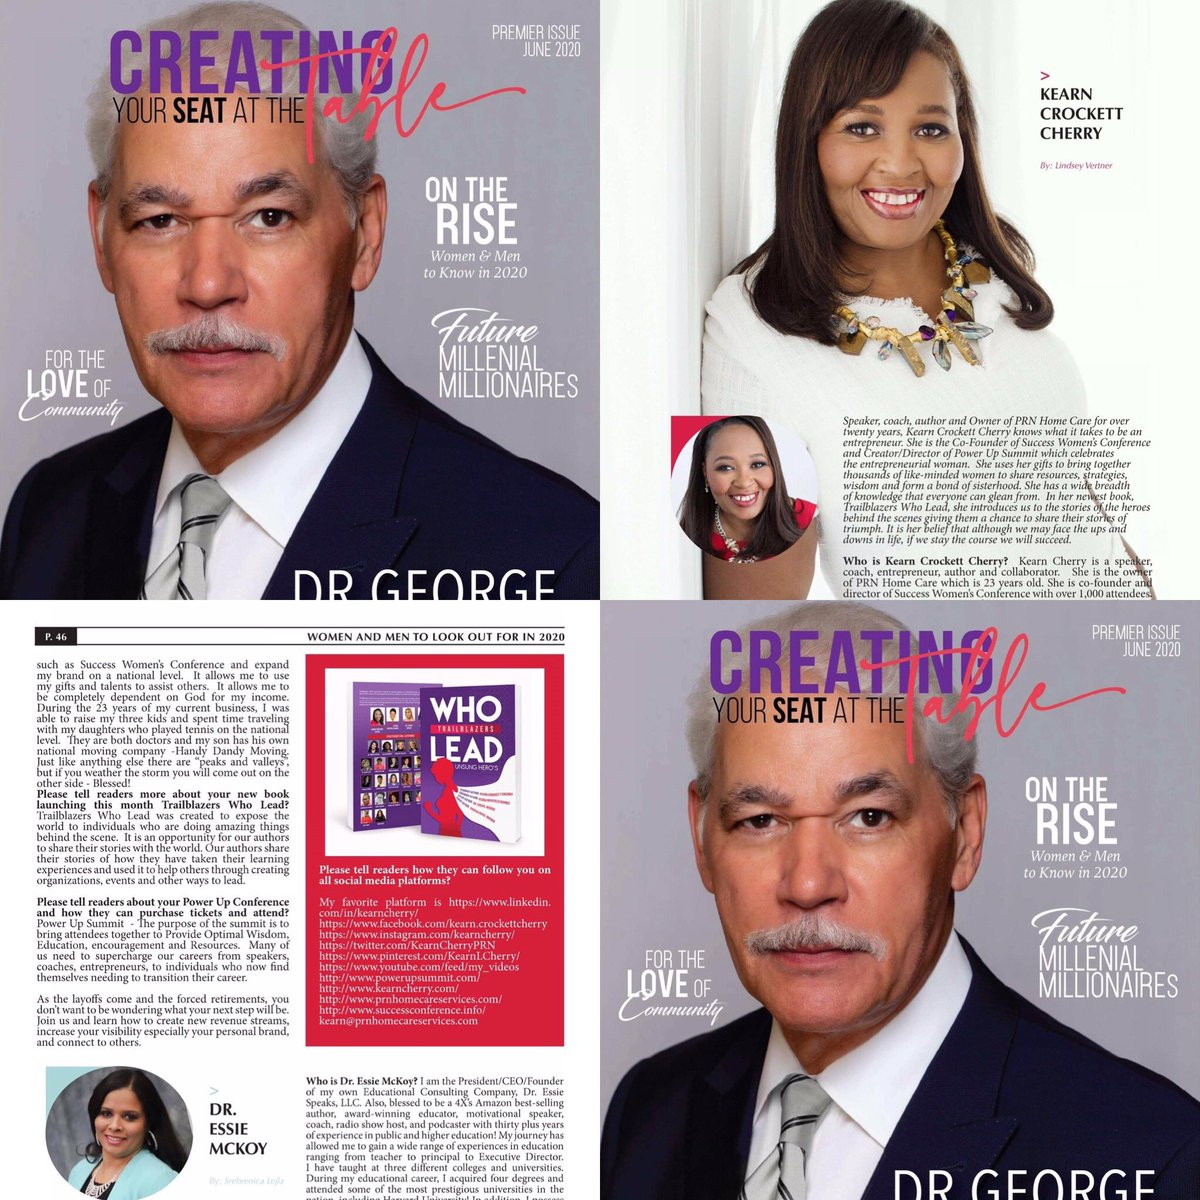 """When God gives you an opportunity to share your story take it.  I am Excited to be featured in the inaugural """"Create Your Seat At the Table International Magazine.  Congratulations to my good friend, Ashley Little!   http://www.ashleylittleenterprises.com @TalkRadioTVLLC @drgeorgecfraser pic.twitter.com/bm5U4QGKBN"""